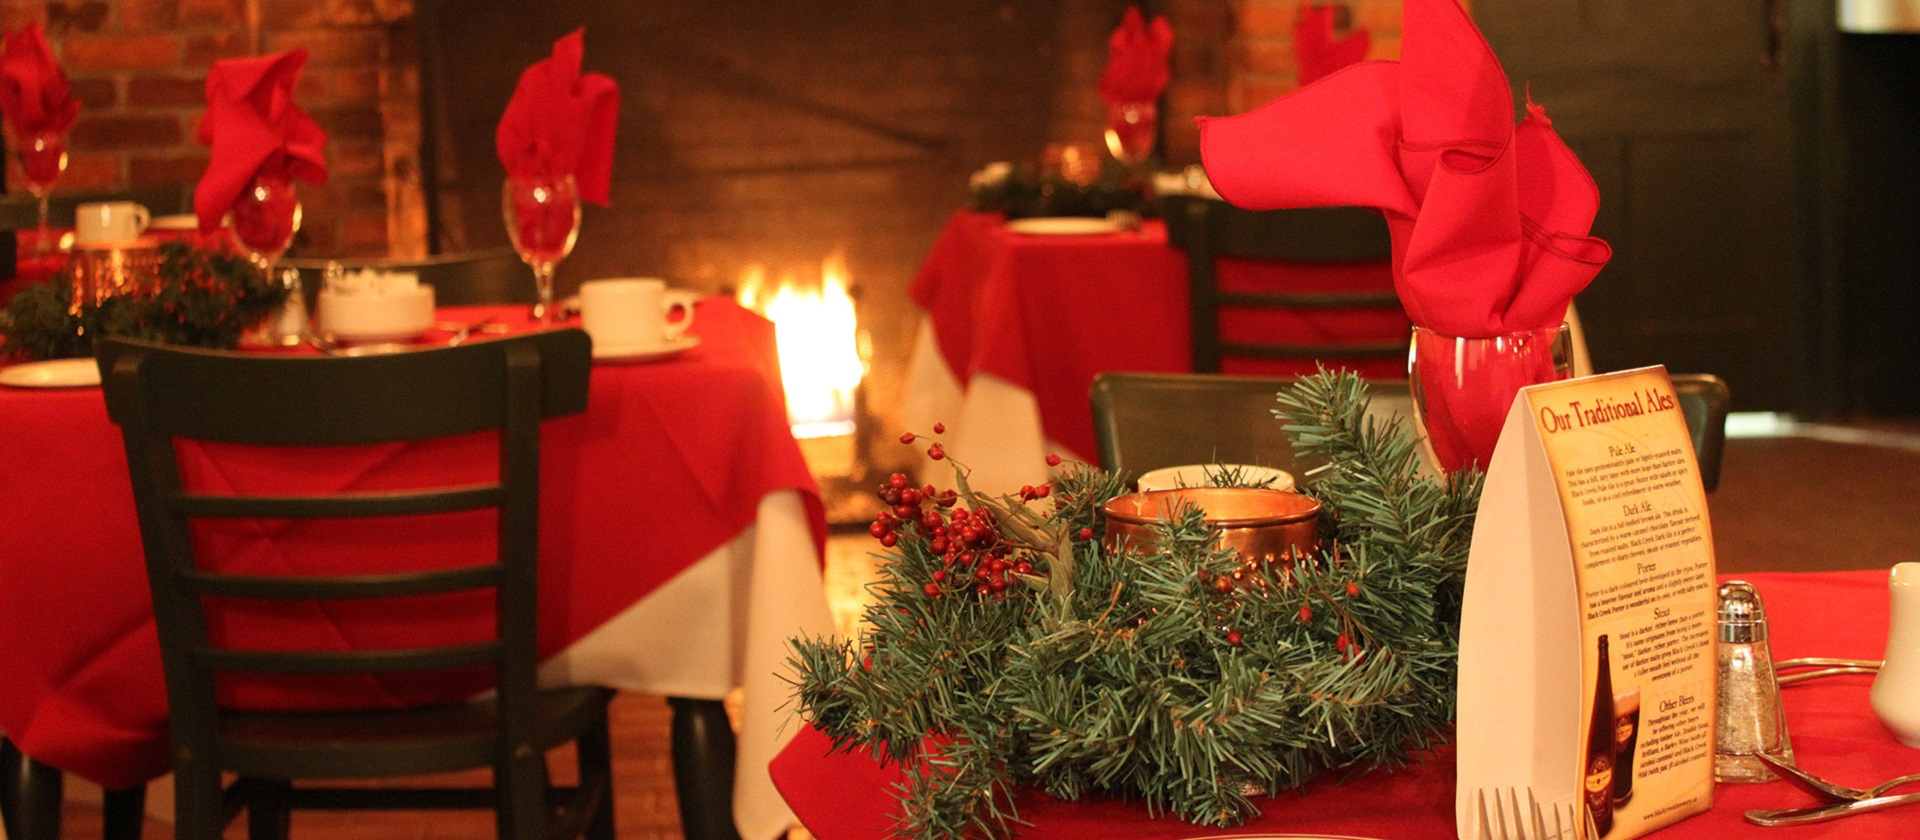 tables set for a traditional Christmas dinner at Black Creek Pioneer Village